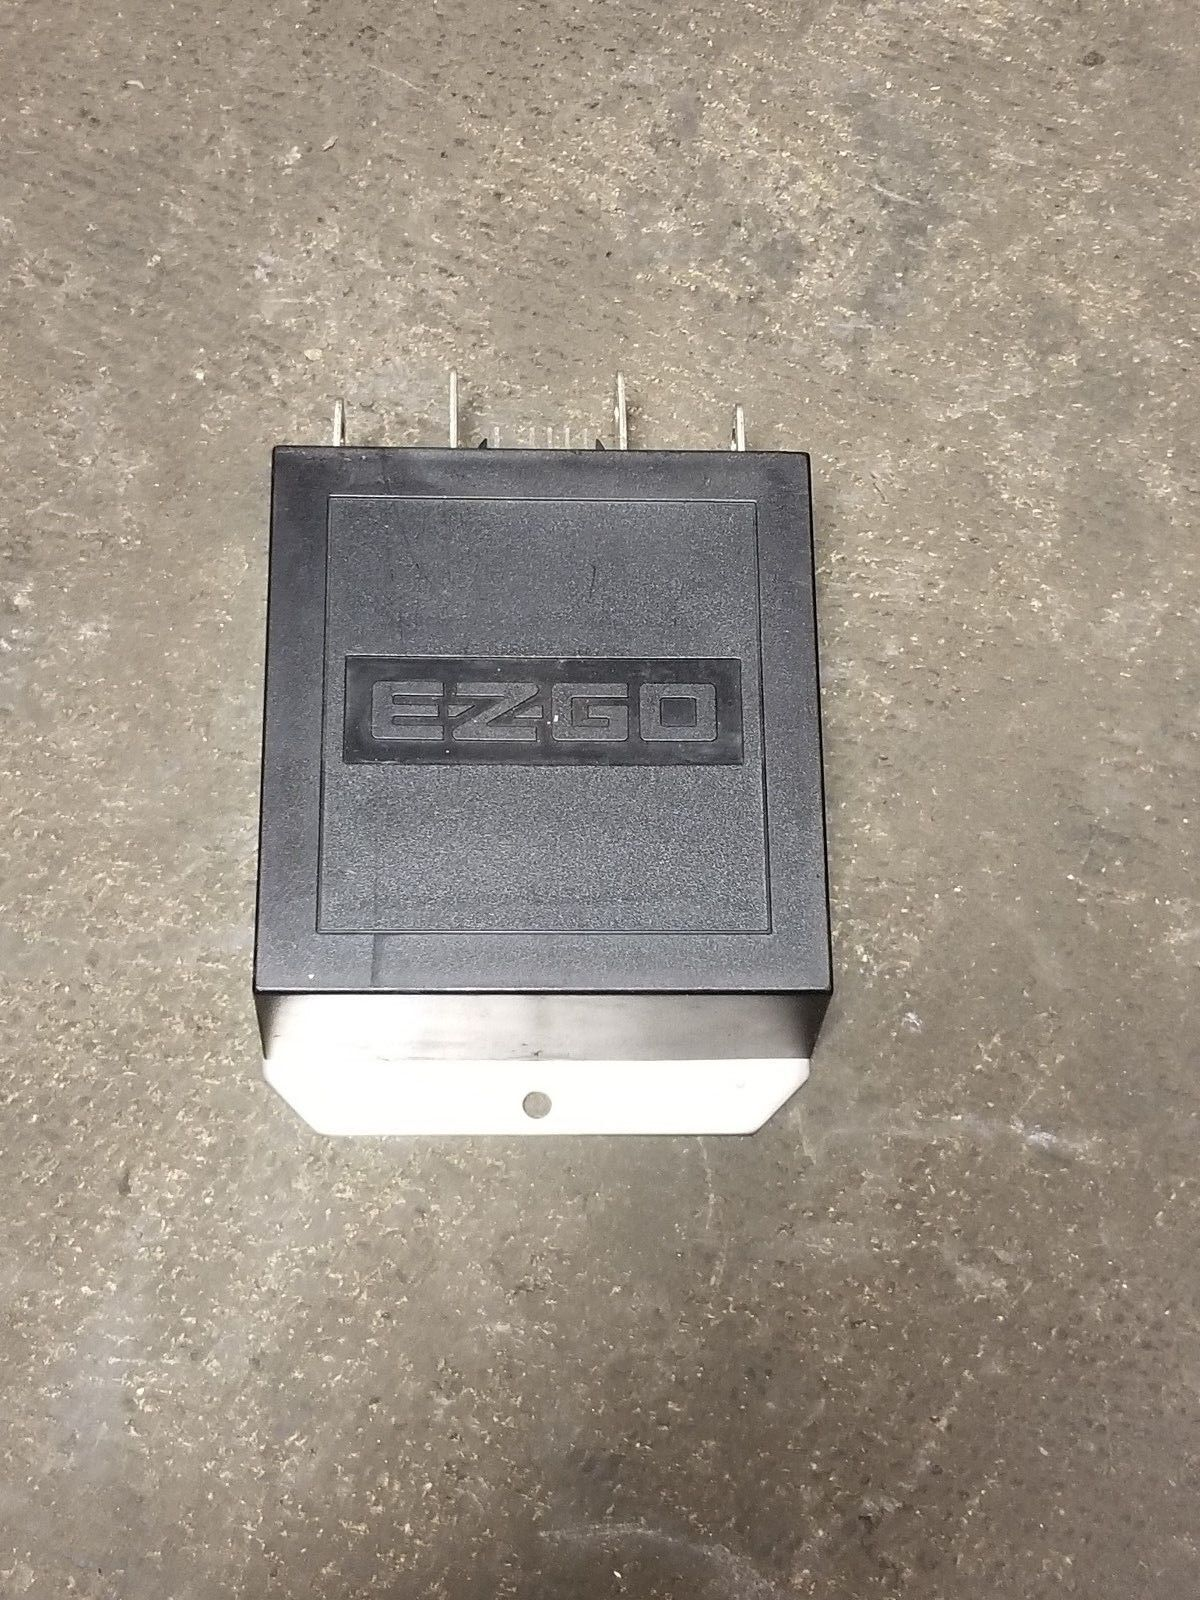 Sd Controller Wiring As Well As Wiring Diagram Ezgo Pds Wiring Diagram